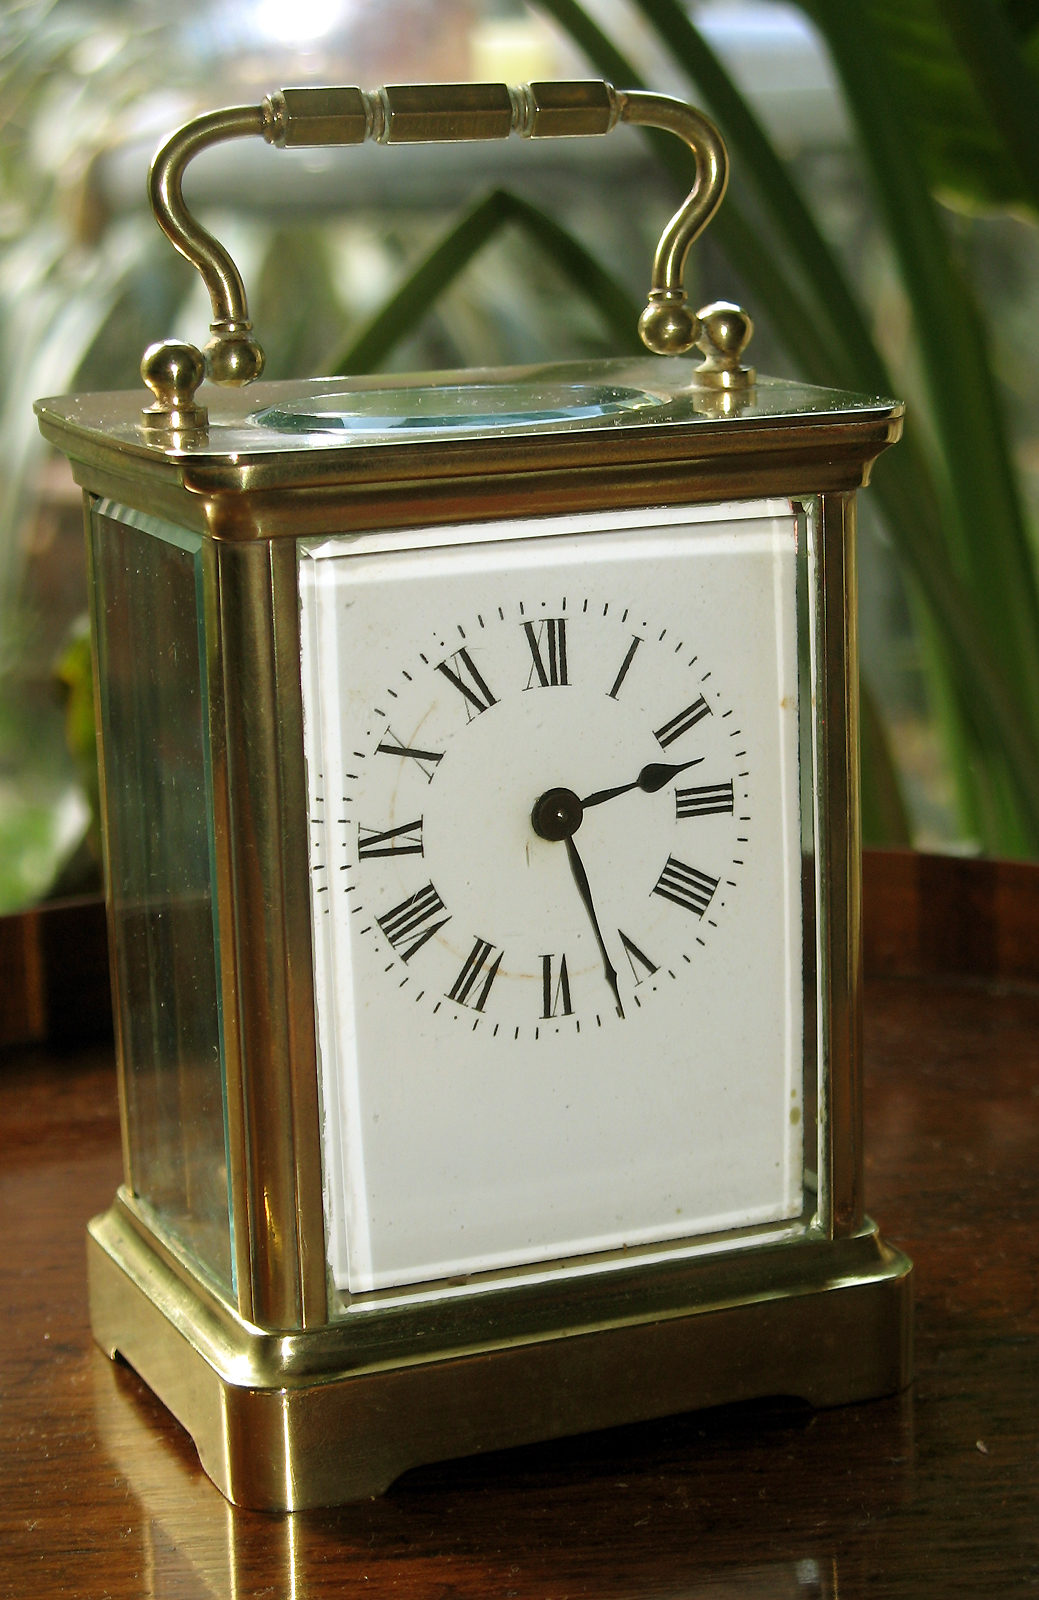 dating french carriage clocks Antique alarm clocks price guide french carriage clock with alarm estimate: auctioneer: sold price: sold date: french carriage clock with alarm.